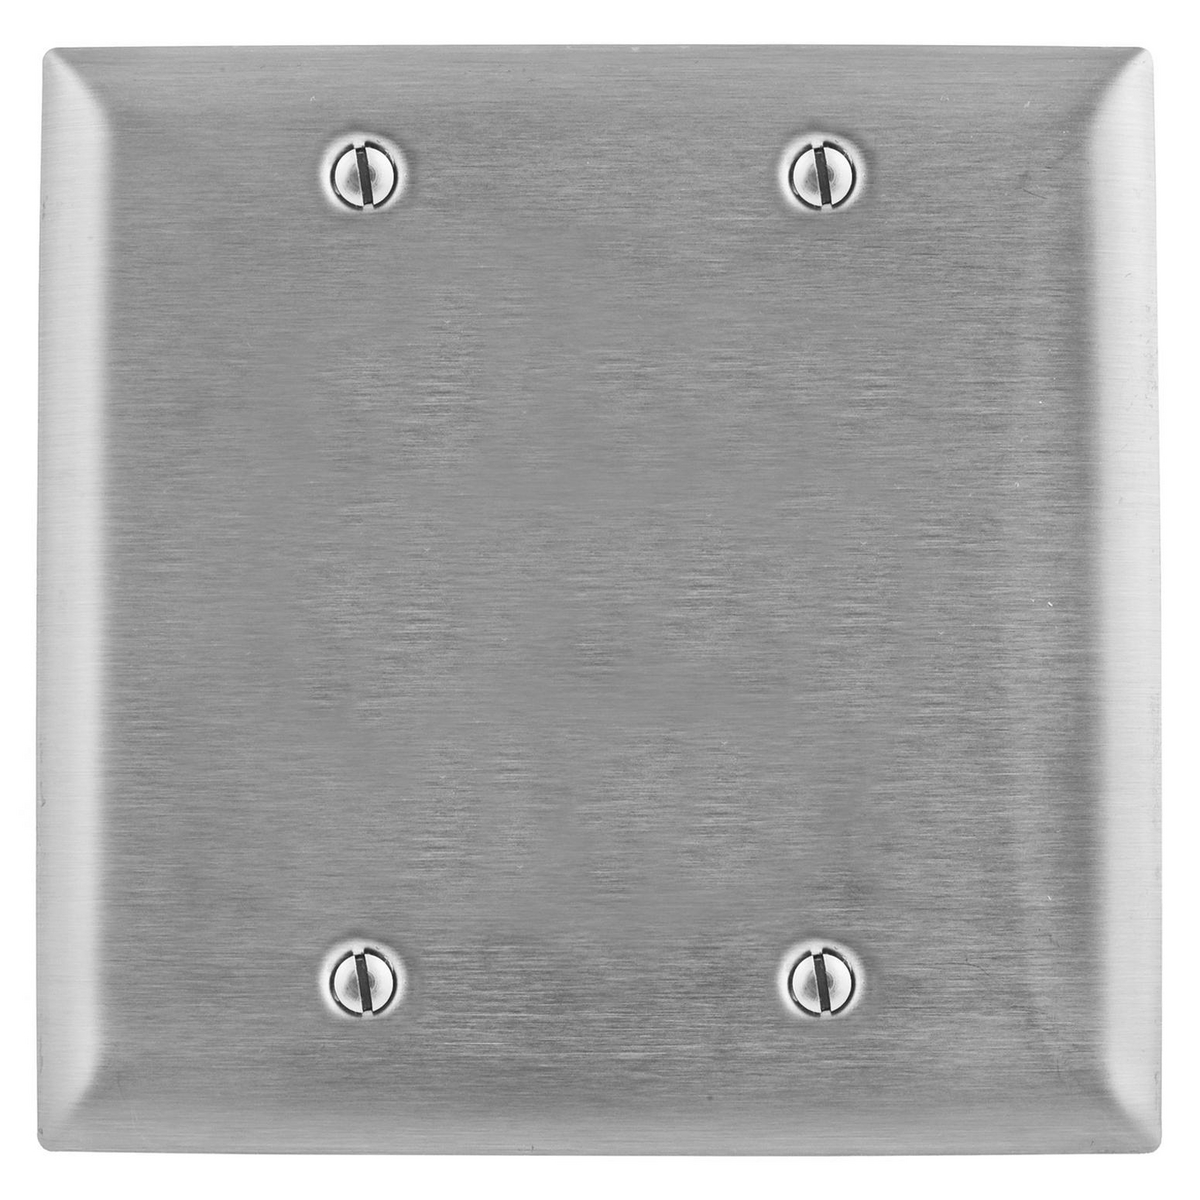 Hubbell SSJ23 2-Gang Stainless Steel Jumbo 2-Toggle Switch Strap Mount Wallplate